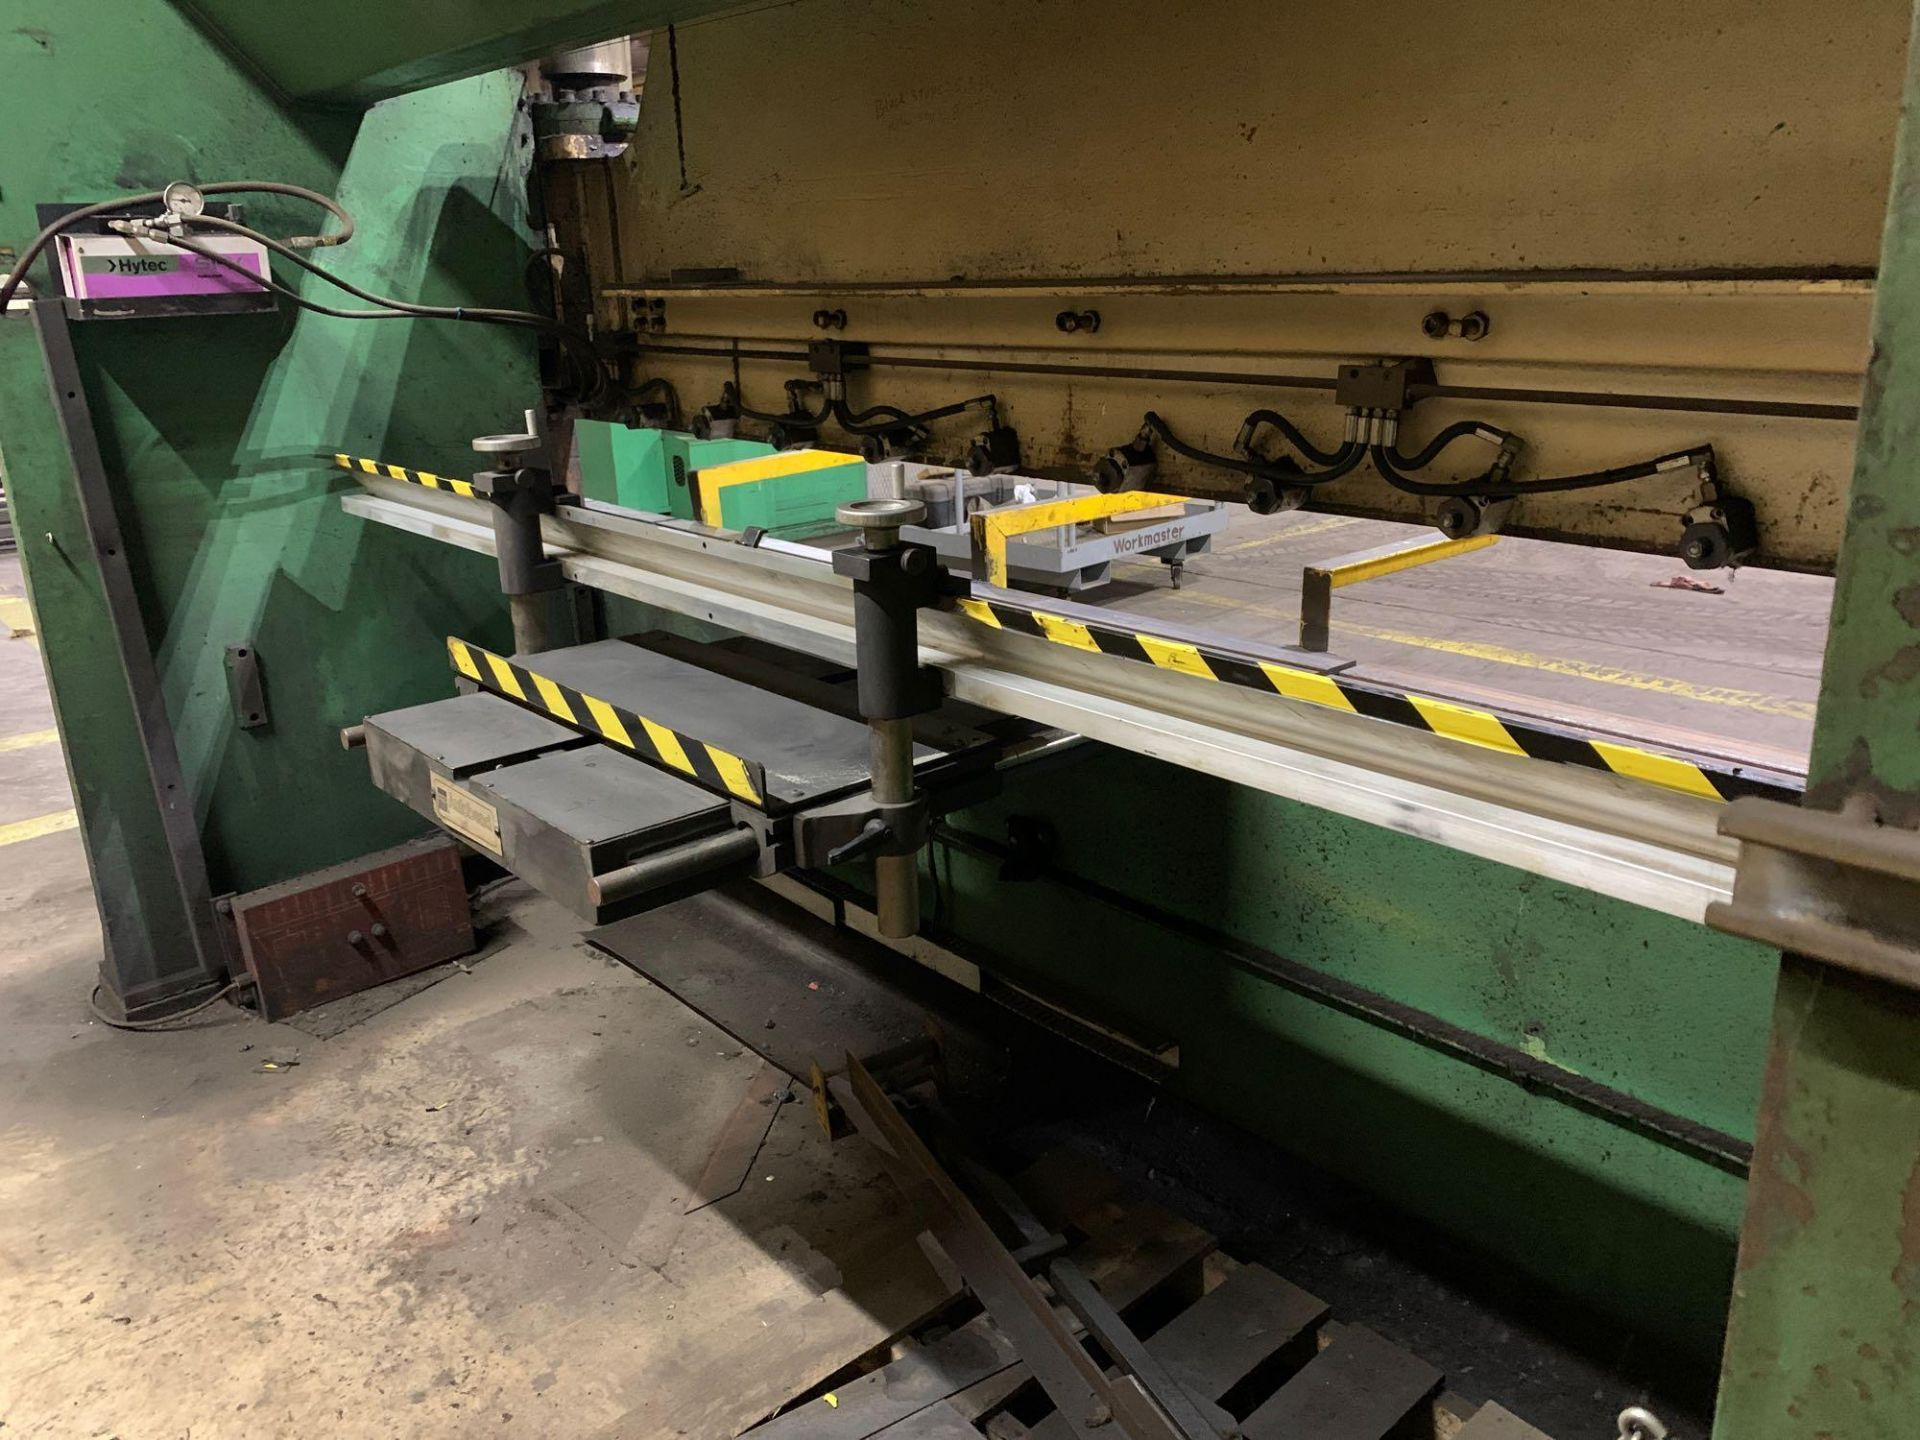 Chicago Dries & Krump Hydraulic Press Brake With: Hurco Autobend 7 Backgauge Control 200 Ton x 16' M - Image 6 of 41